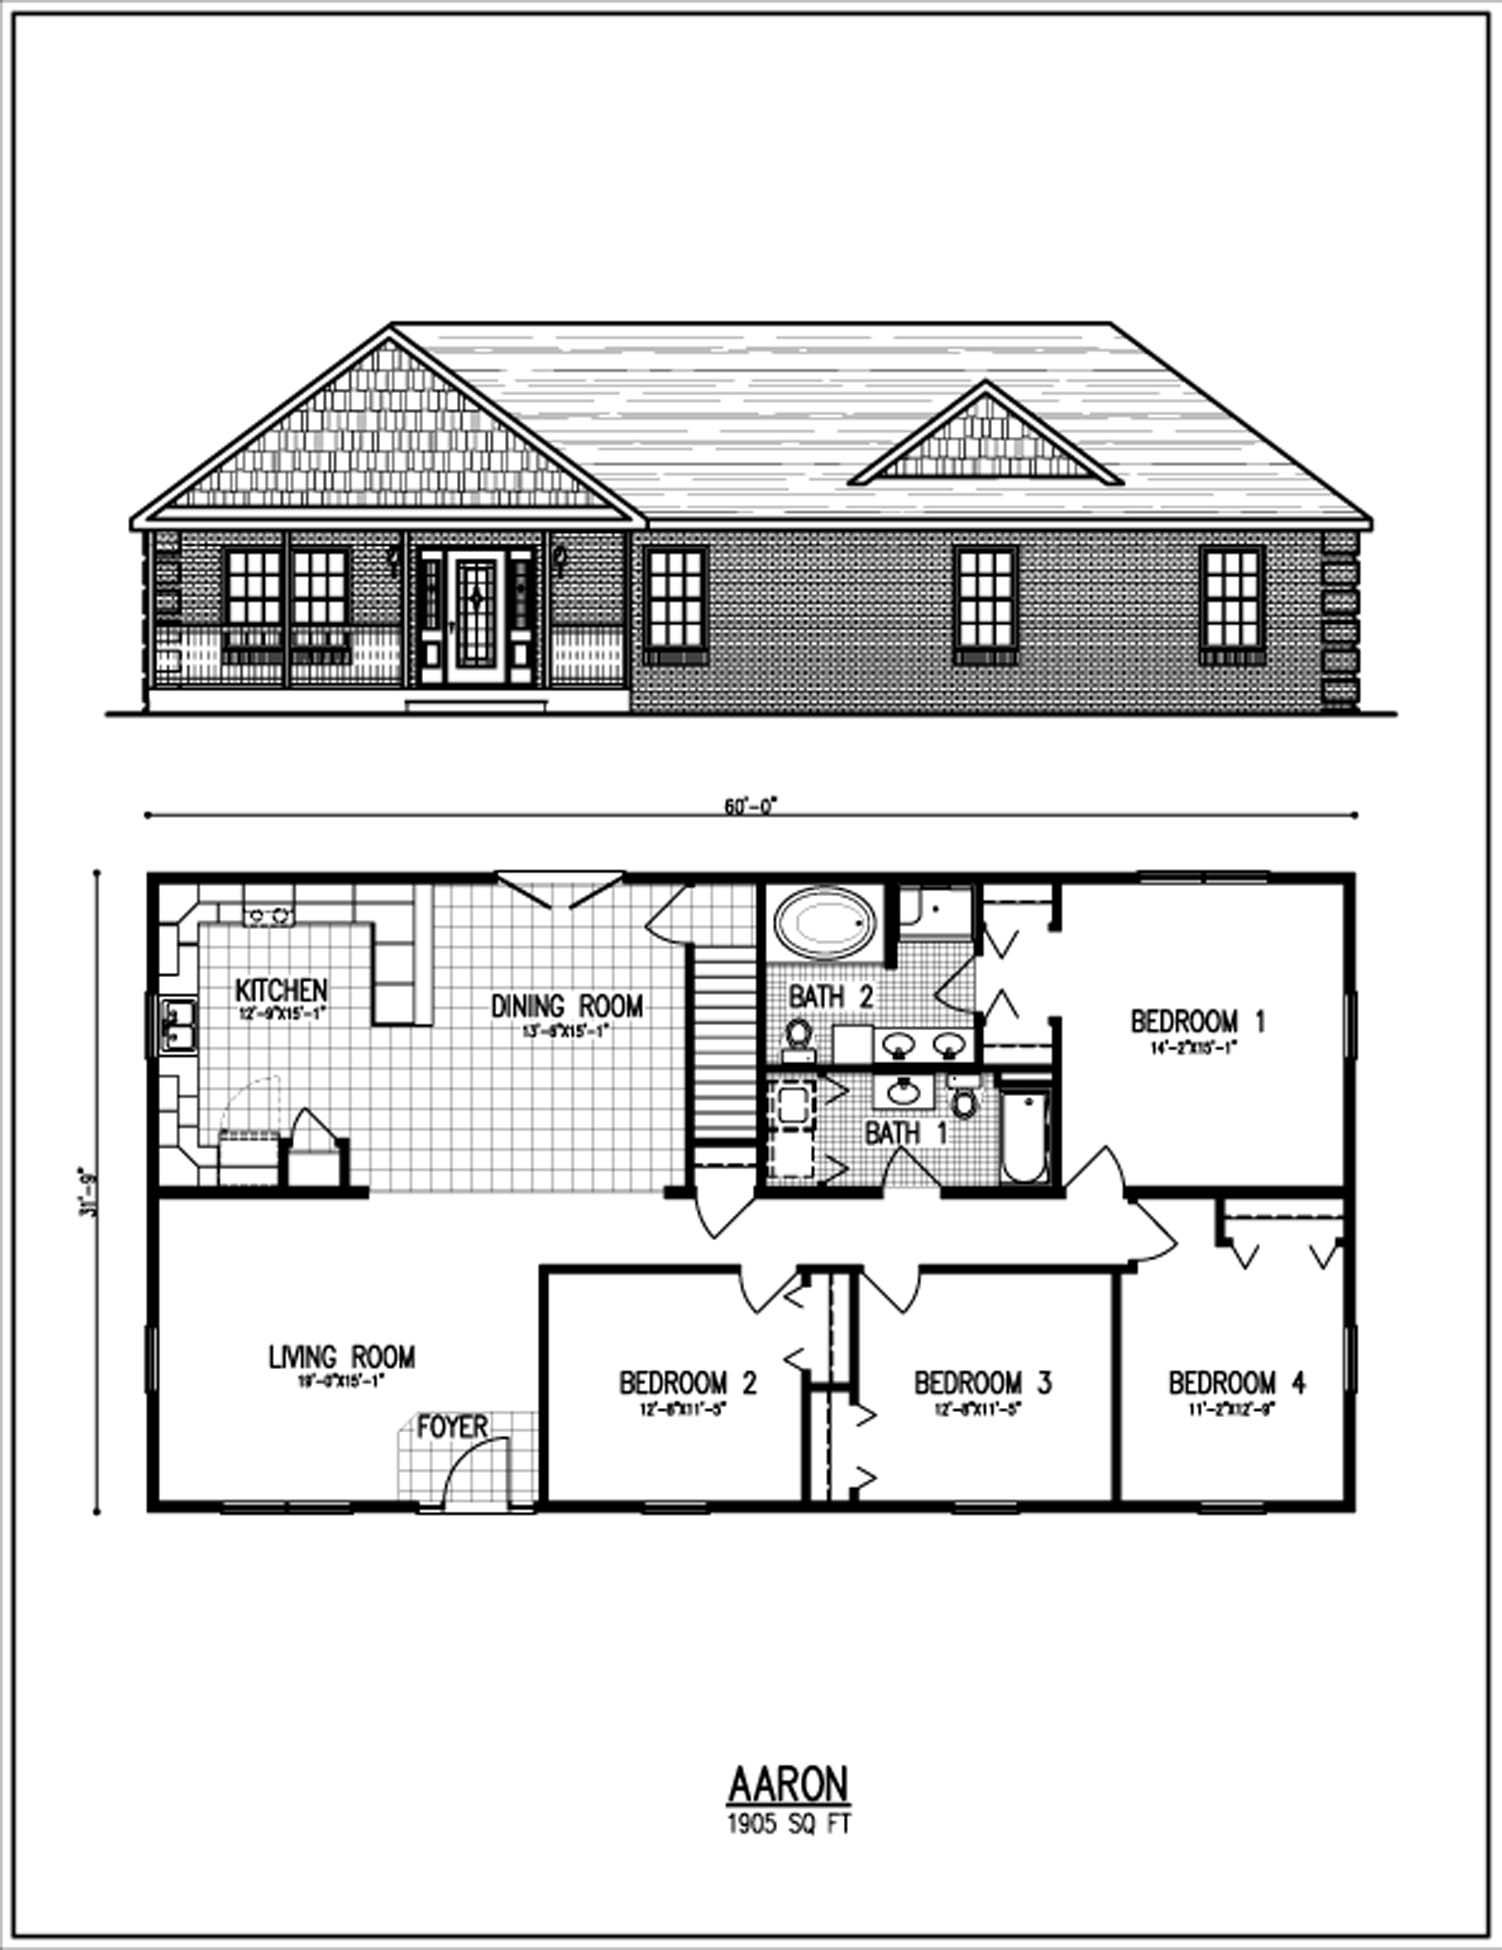 All american homes floorplan center staffordcape for Ranch building plans